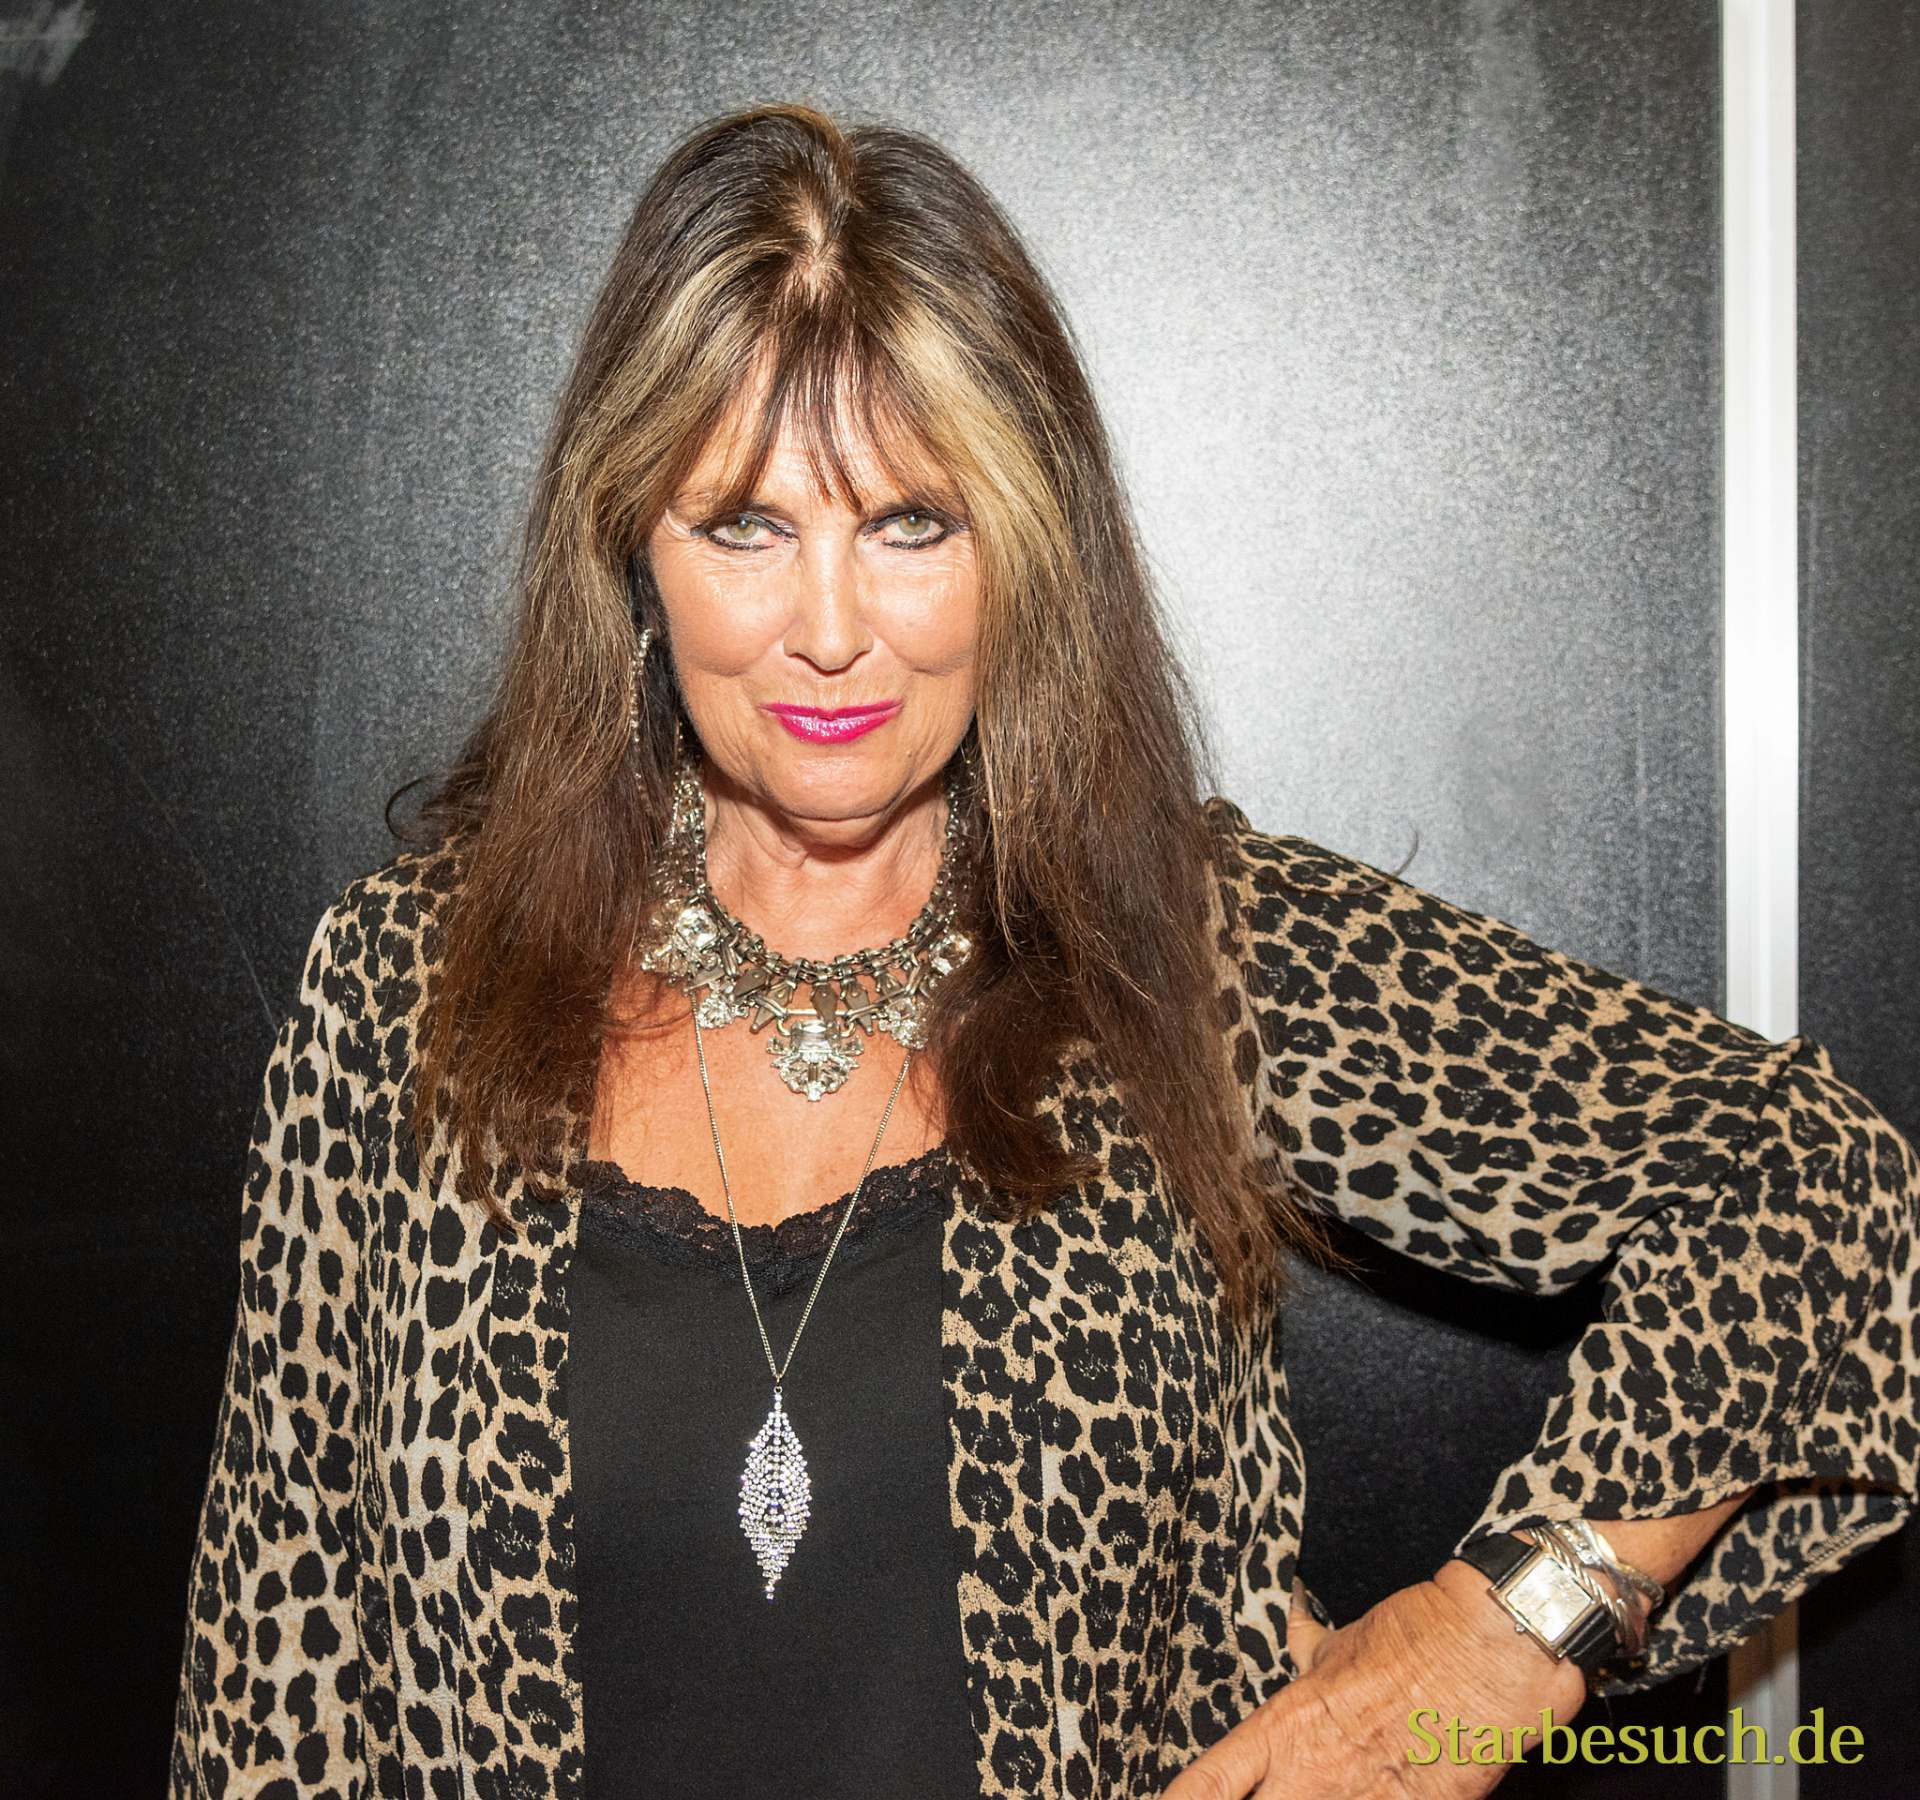 DORTMUND, GERMANY - December 1st 2018: Caroline Munro (*1949, British actor and model) at German Comic Con Dortmund, a two day fan convention